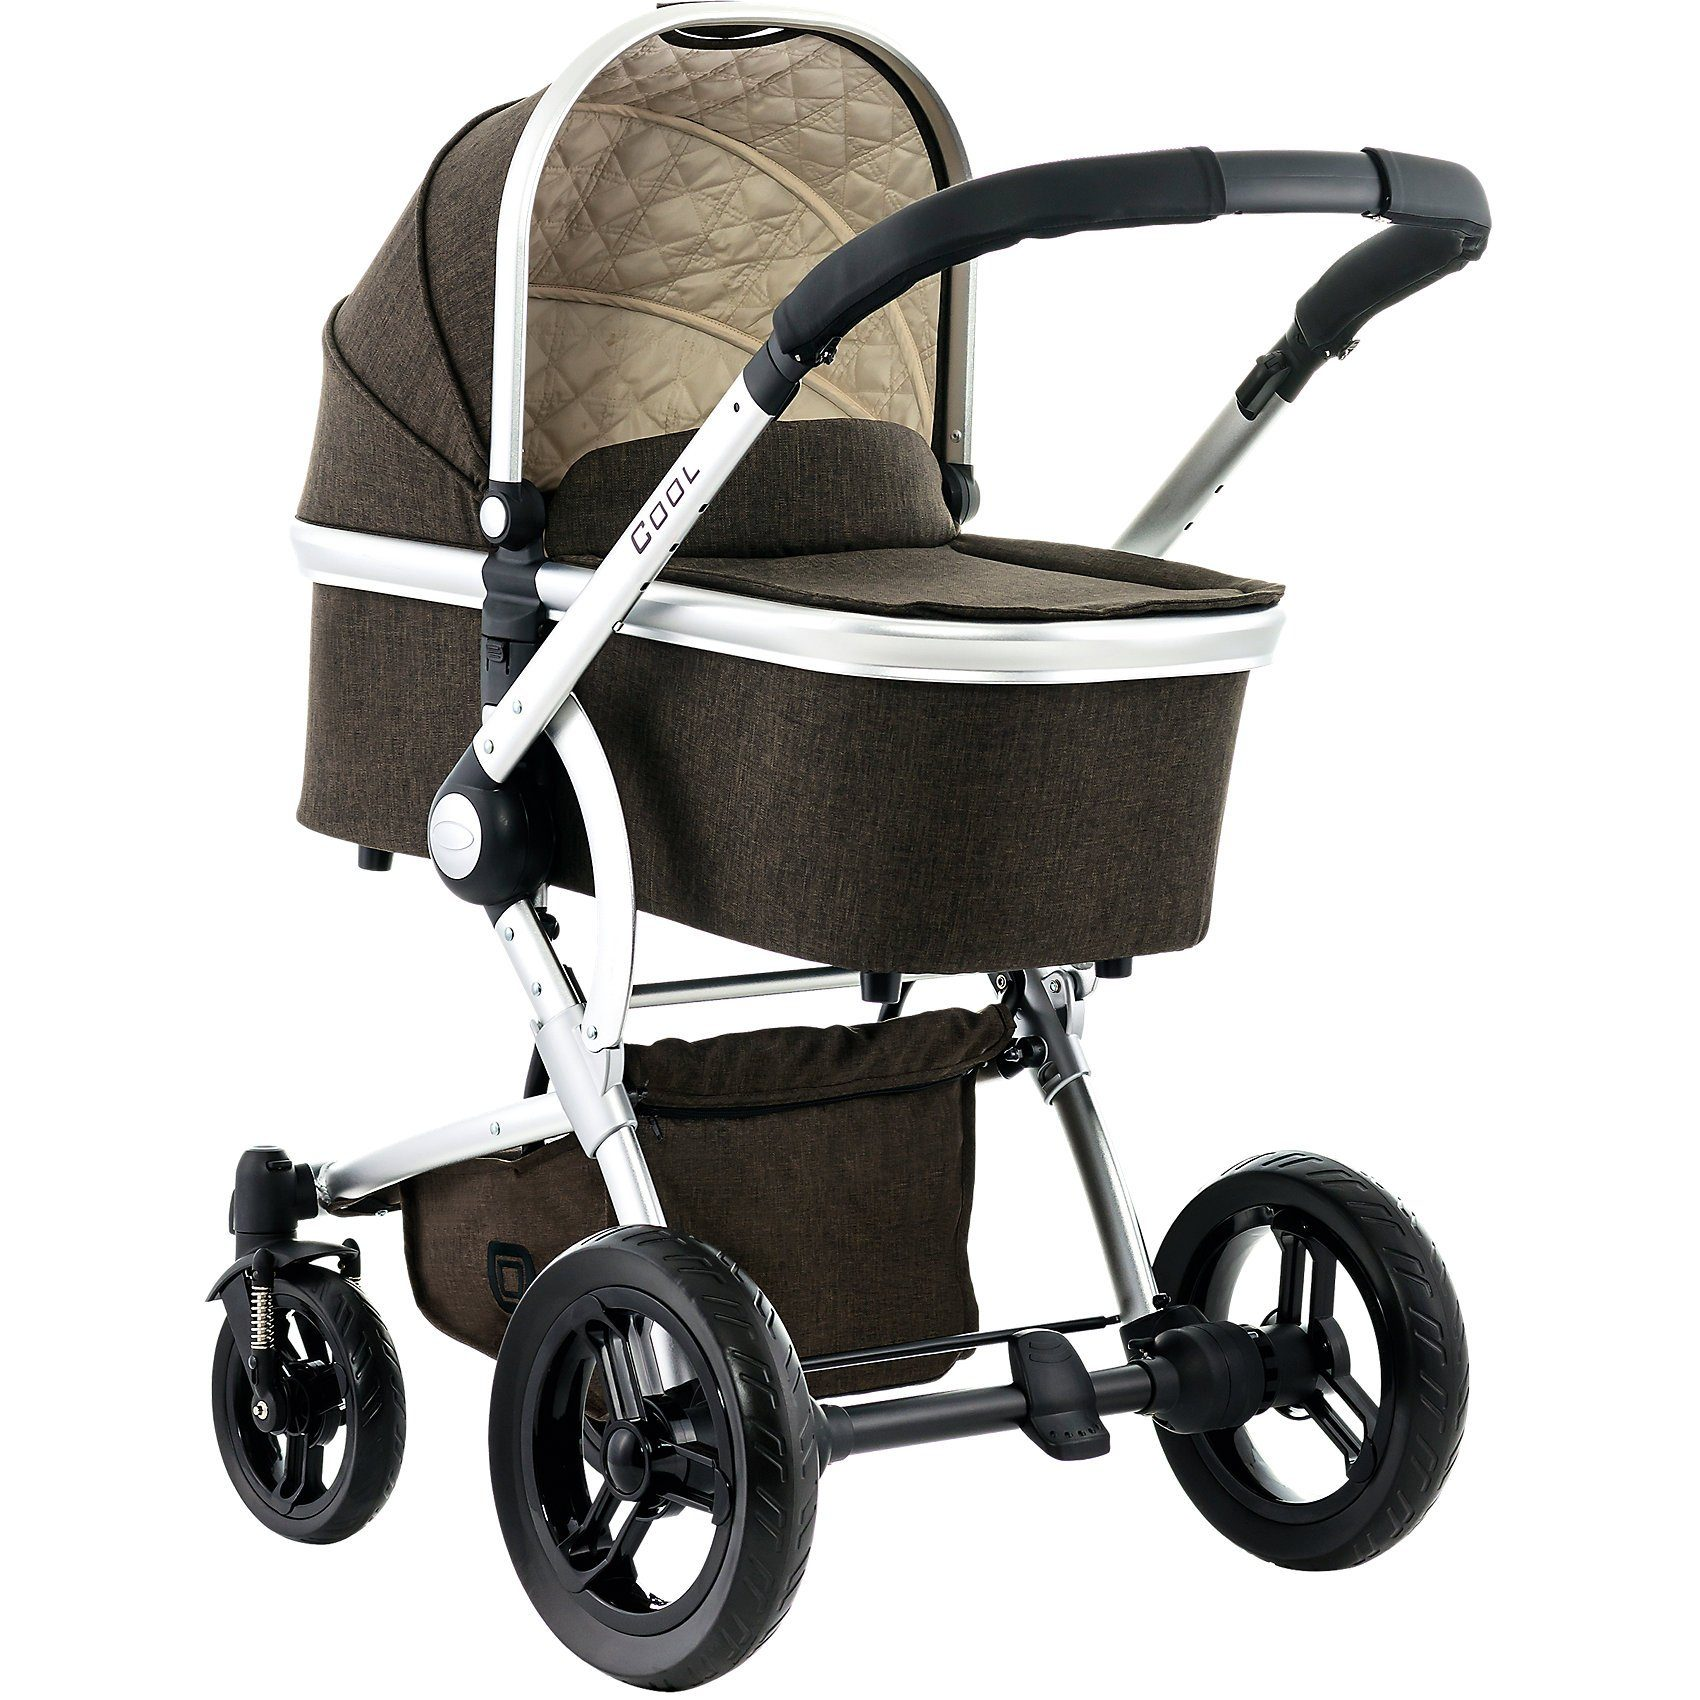 Moon Kombi Kinderwagen COOL City, brown/melange